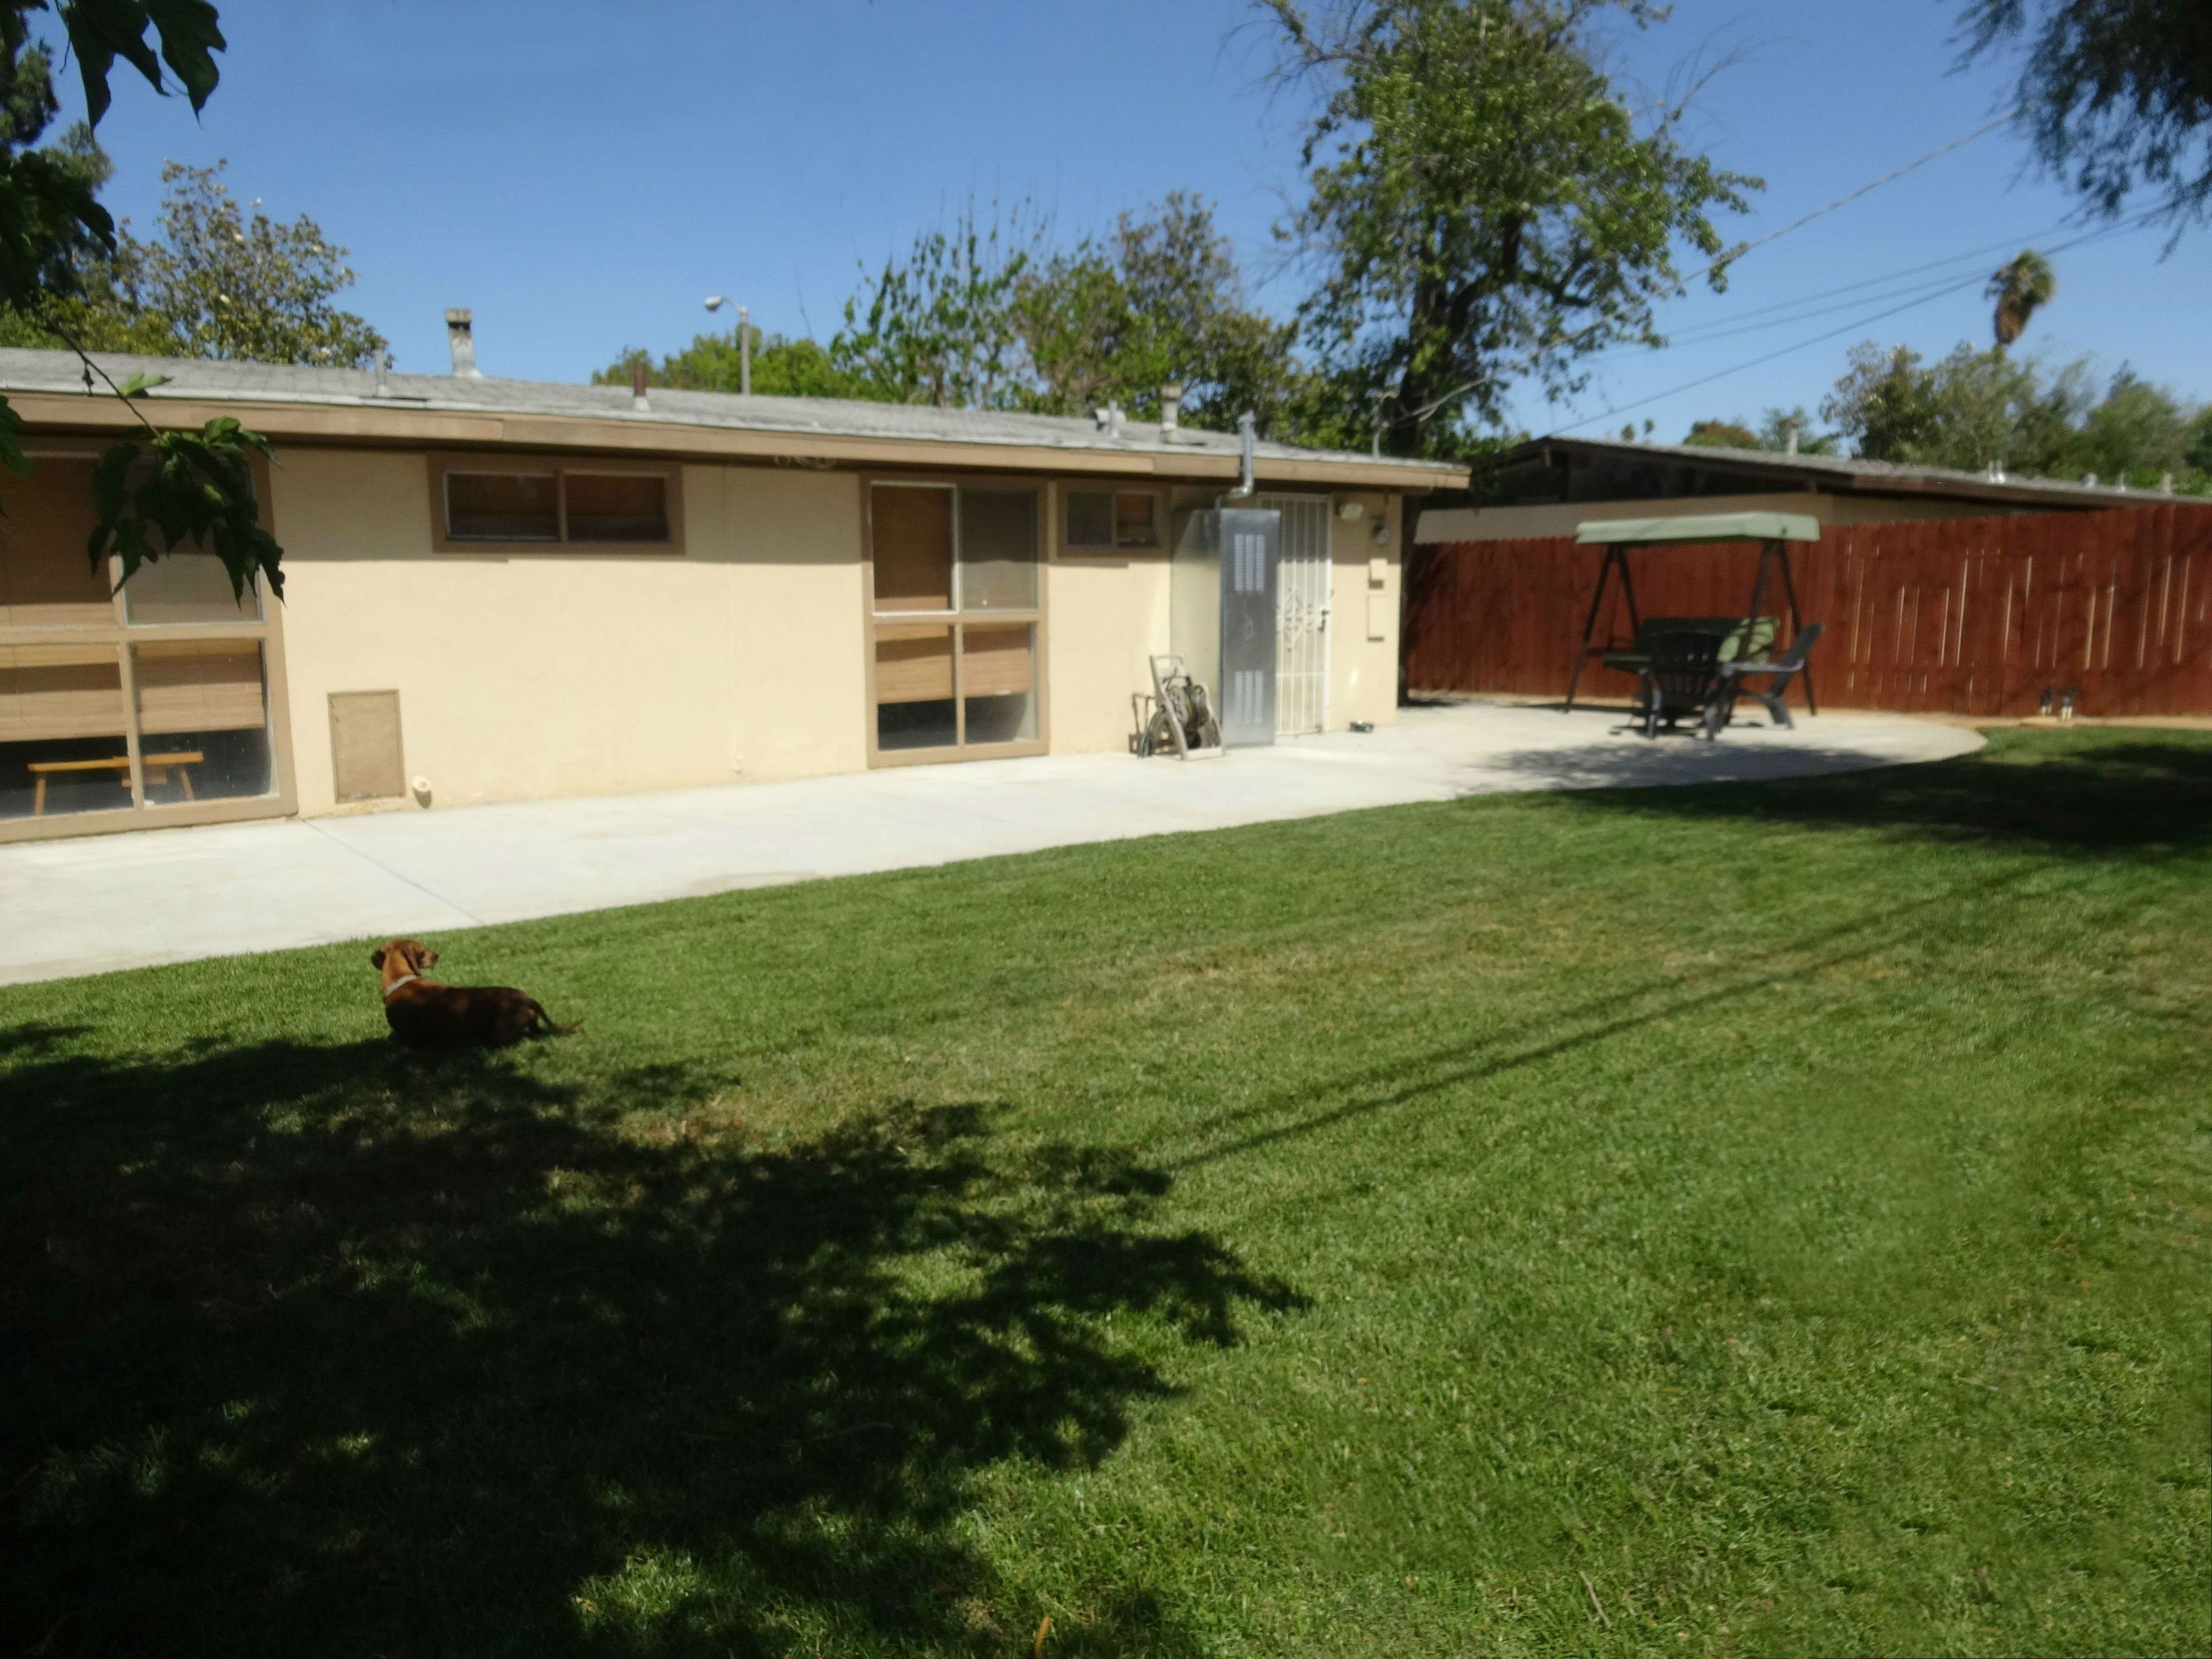 Spacious backyard with privacy fence and flowing green grass, fruit trees, and dedicated BBQ area on side.